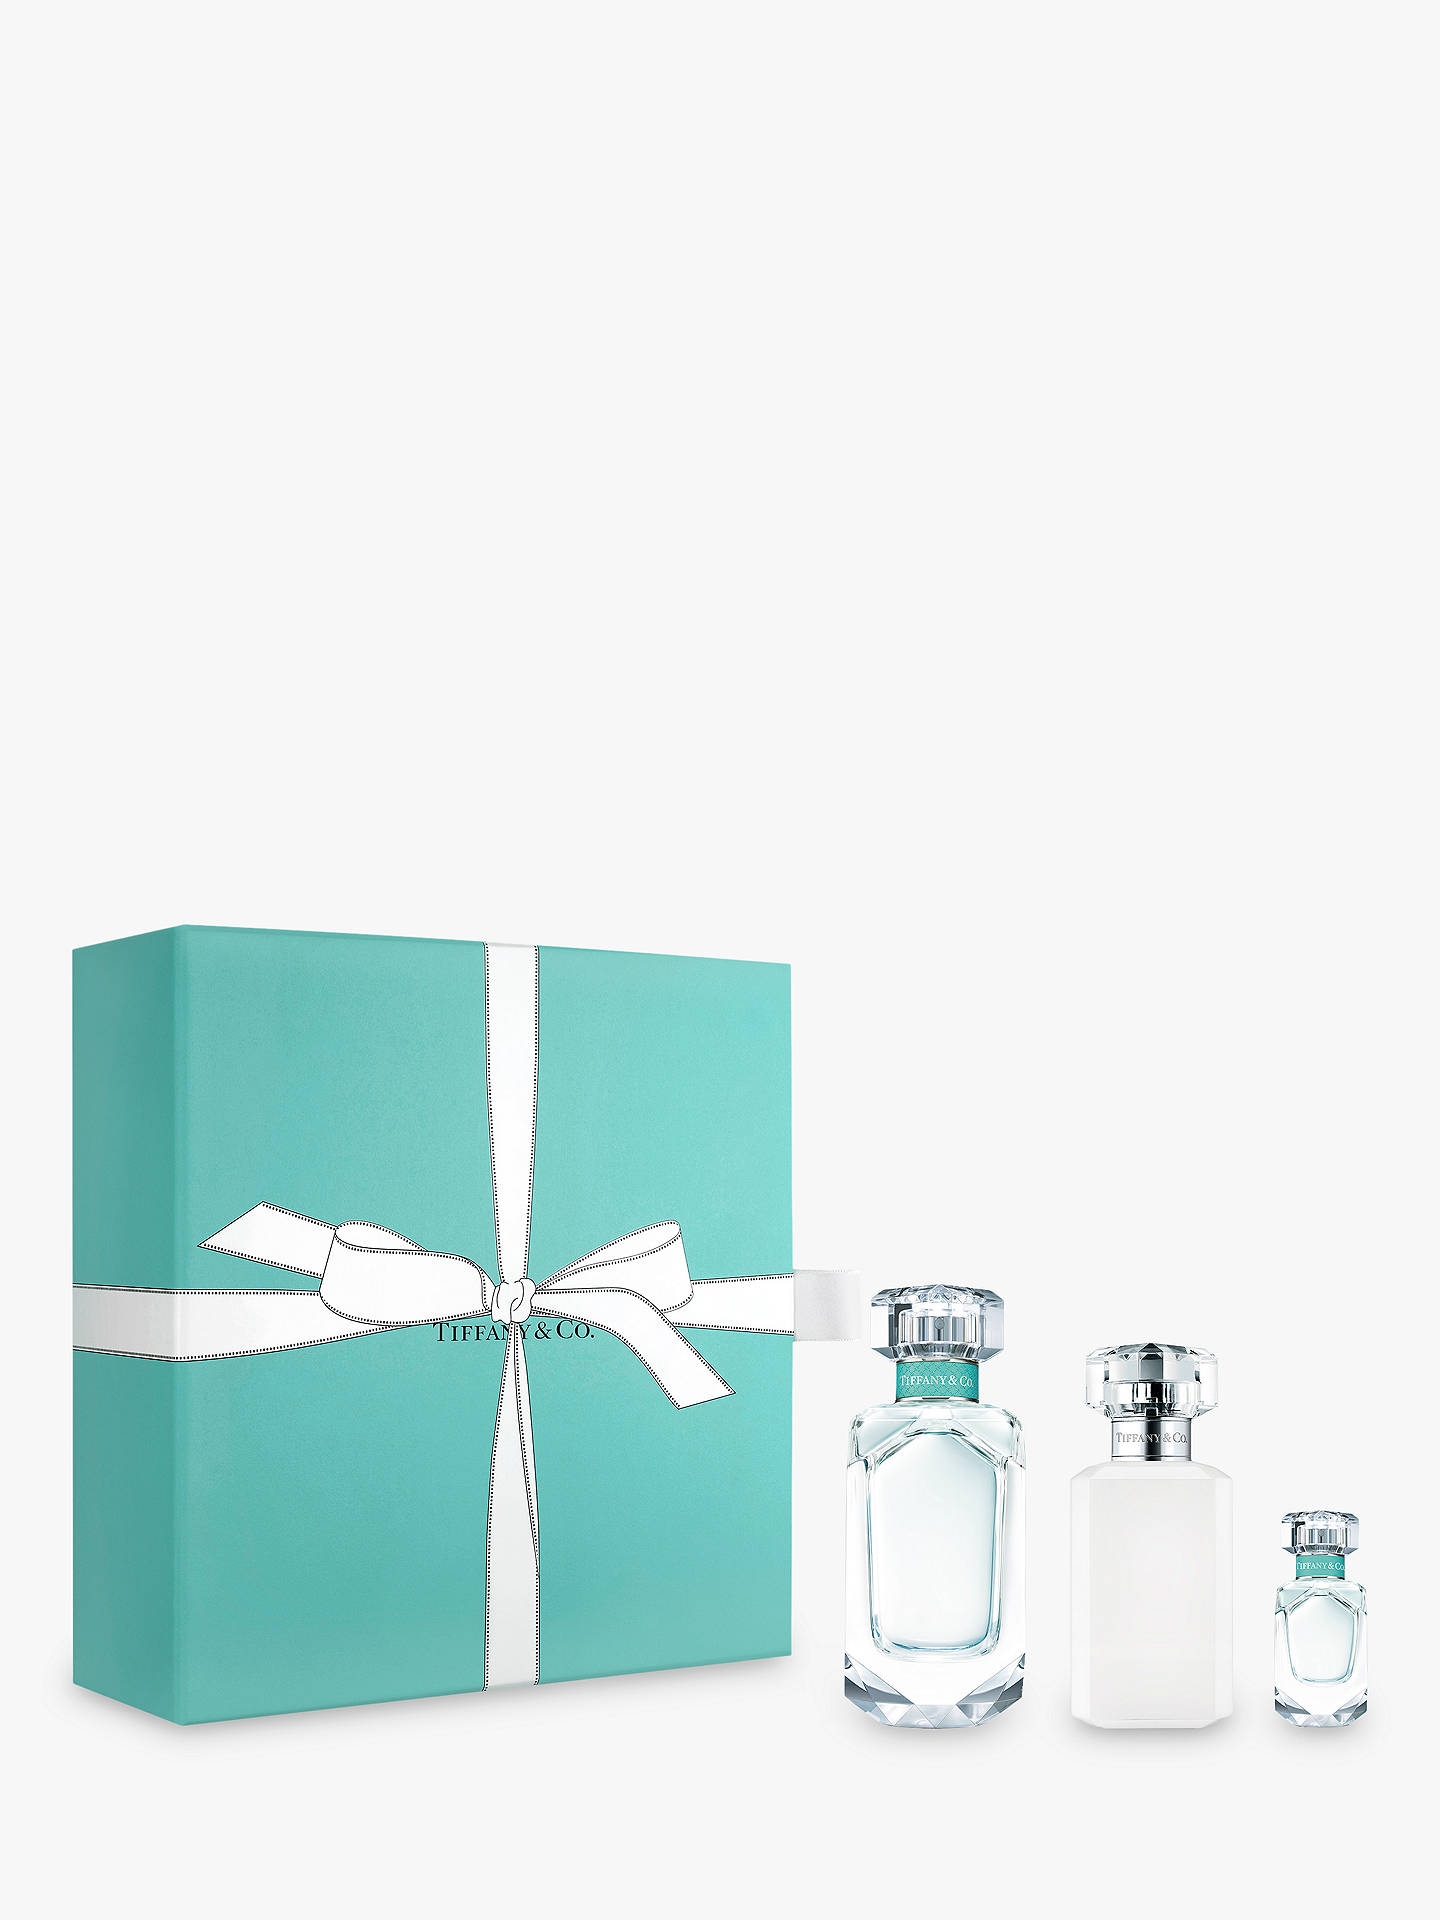 BuyTiffany & Co Signature 75ml Eau de Parfum Fragrance Gift Set Online at johnlewis.com